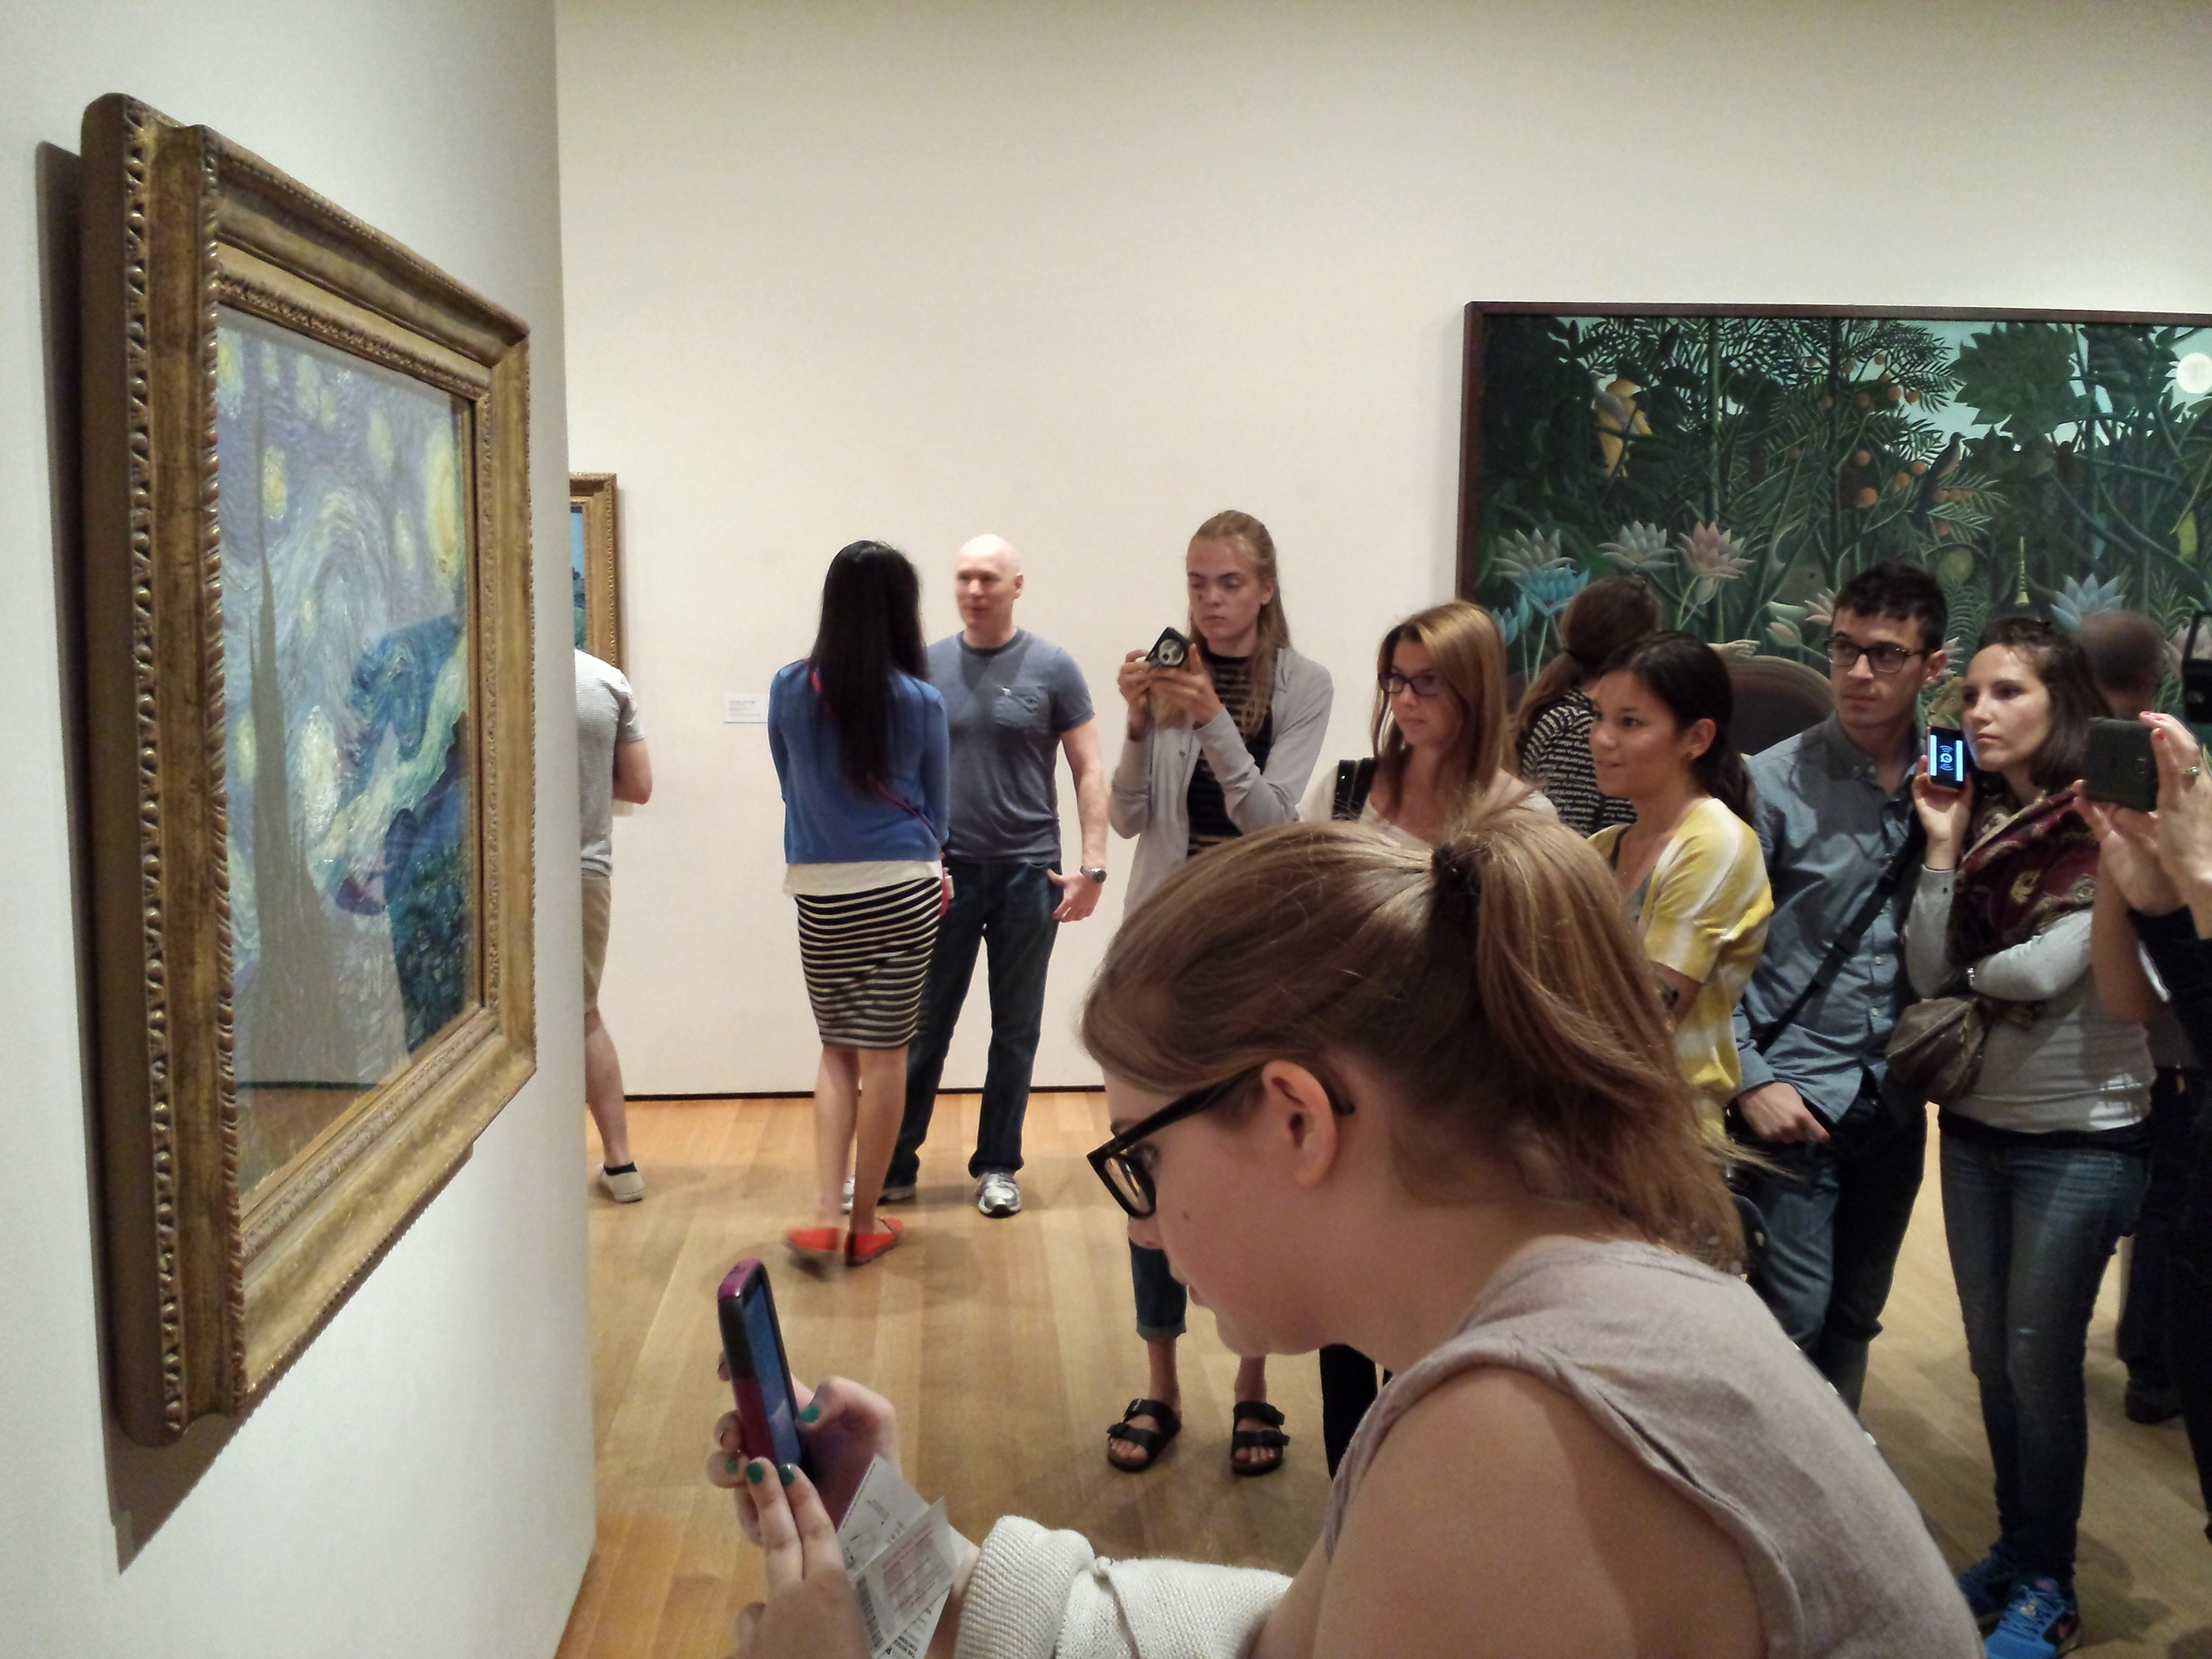 """Crowds hovered around famous pieces. Here Van Gogh's """"The Starry Night"""". I took photos, too. Behind is """"The Dream"""" by Henri Rosseau"""